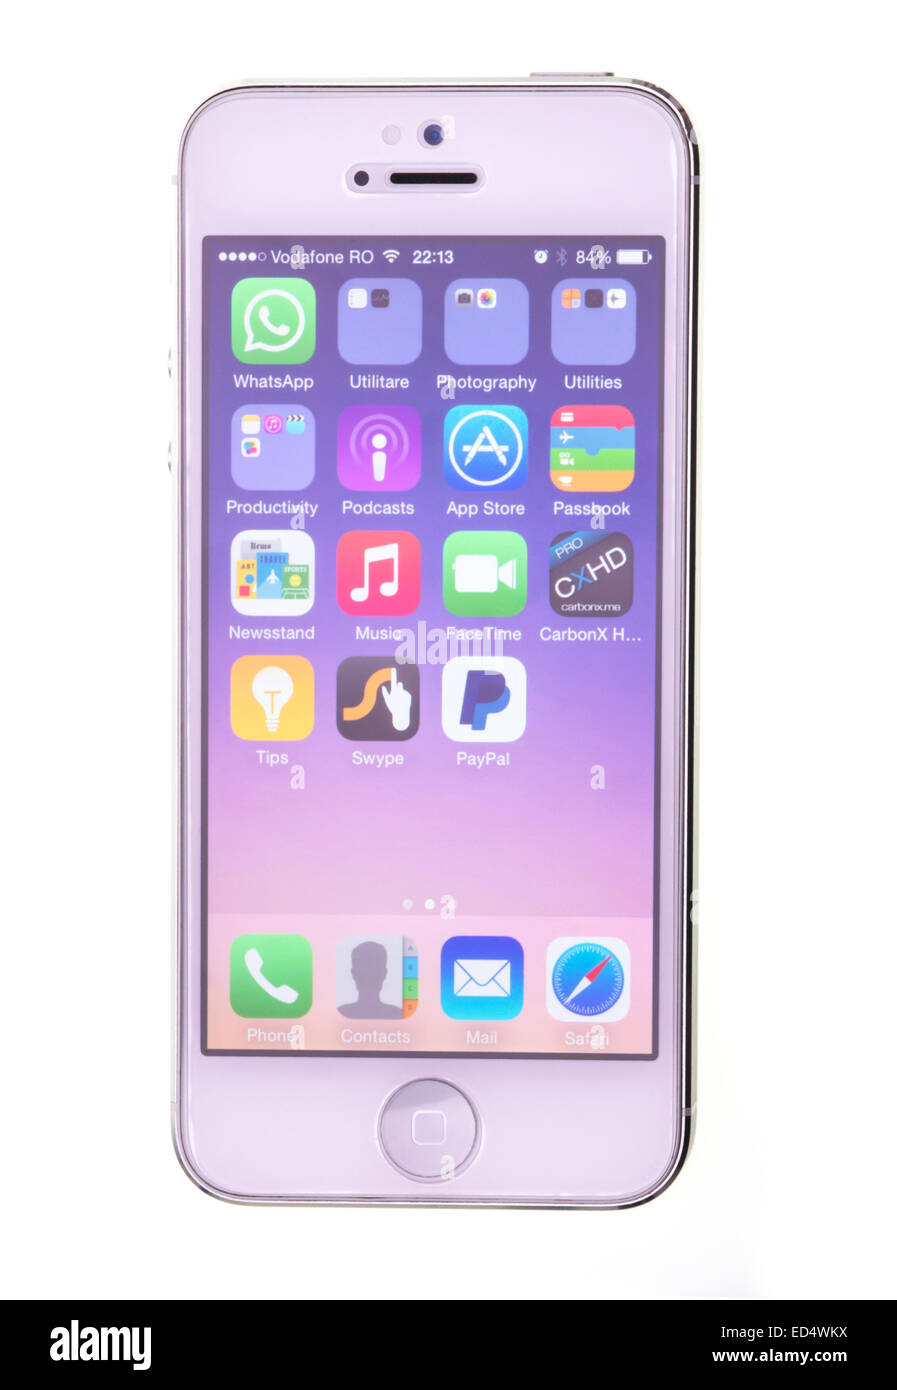 New Apple iPhone display, touch screen device. - Stock Image